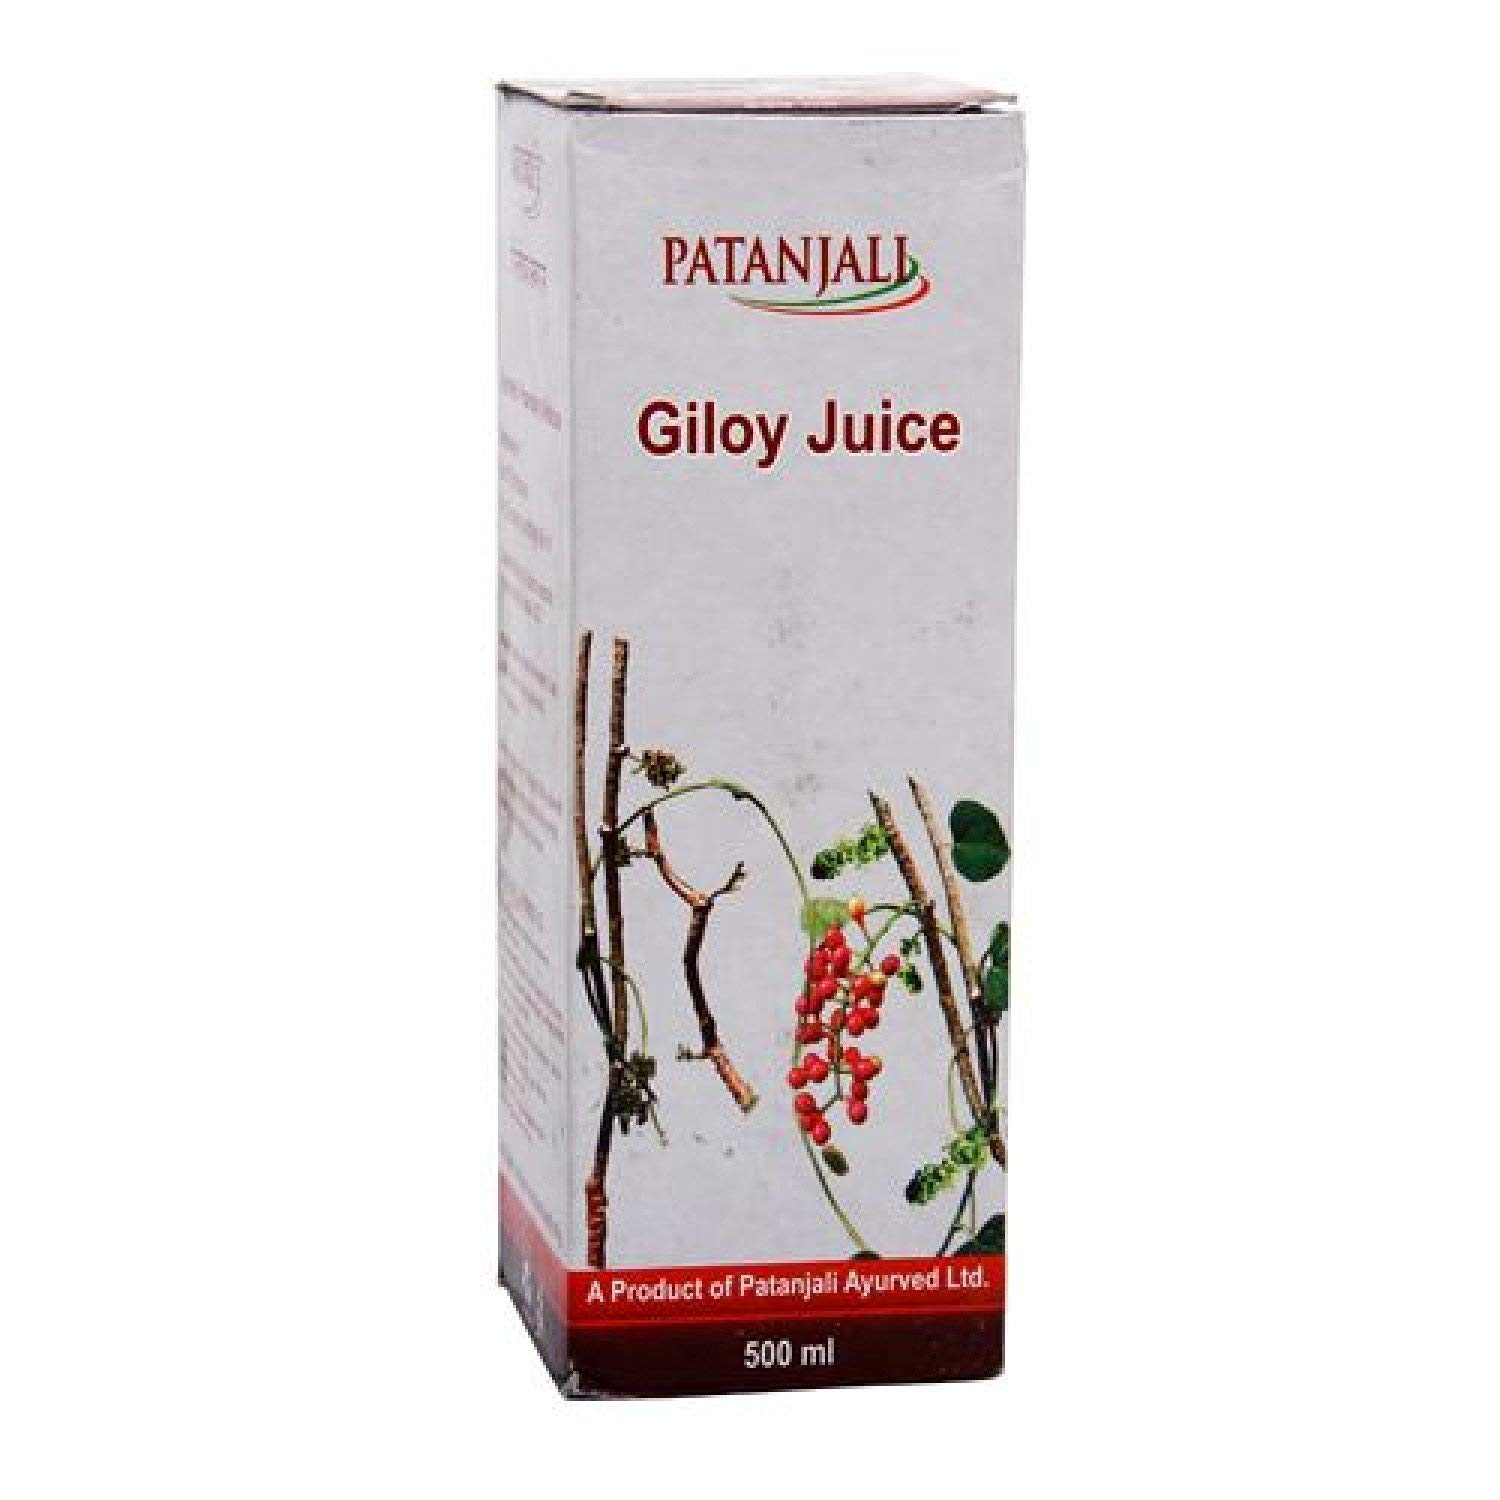 Giloy juice in Patanjali